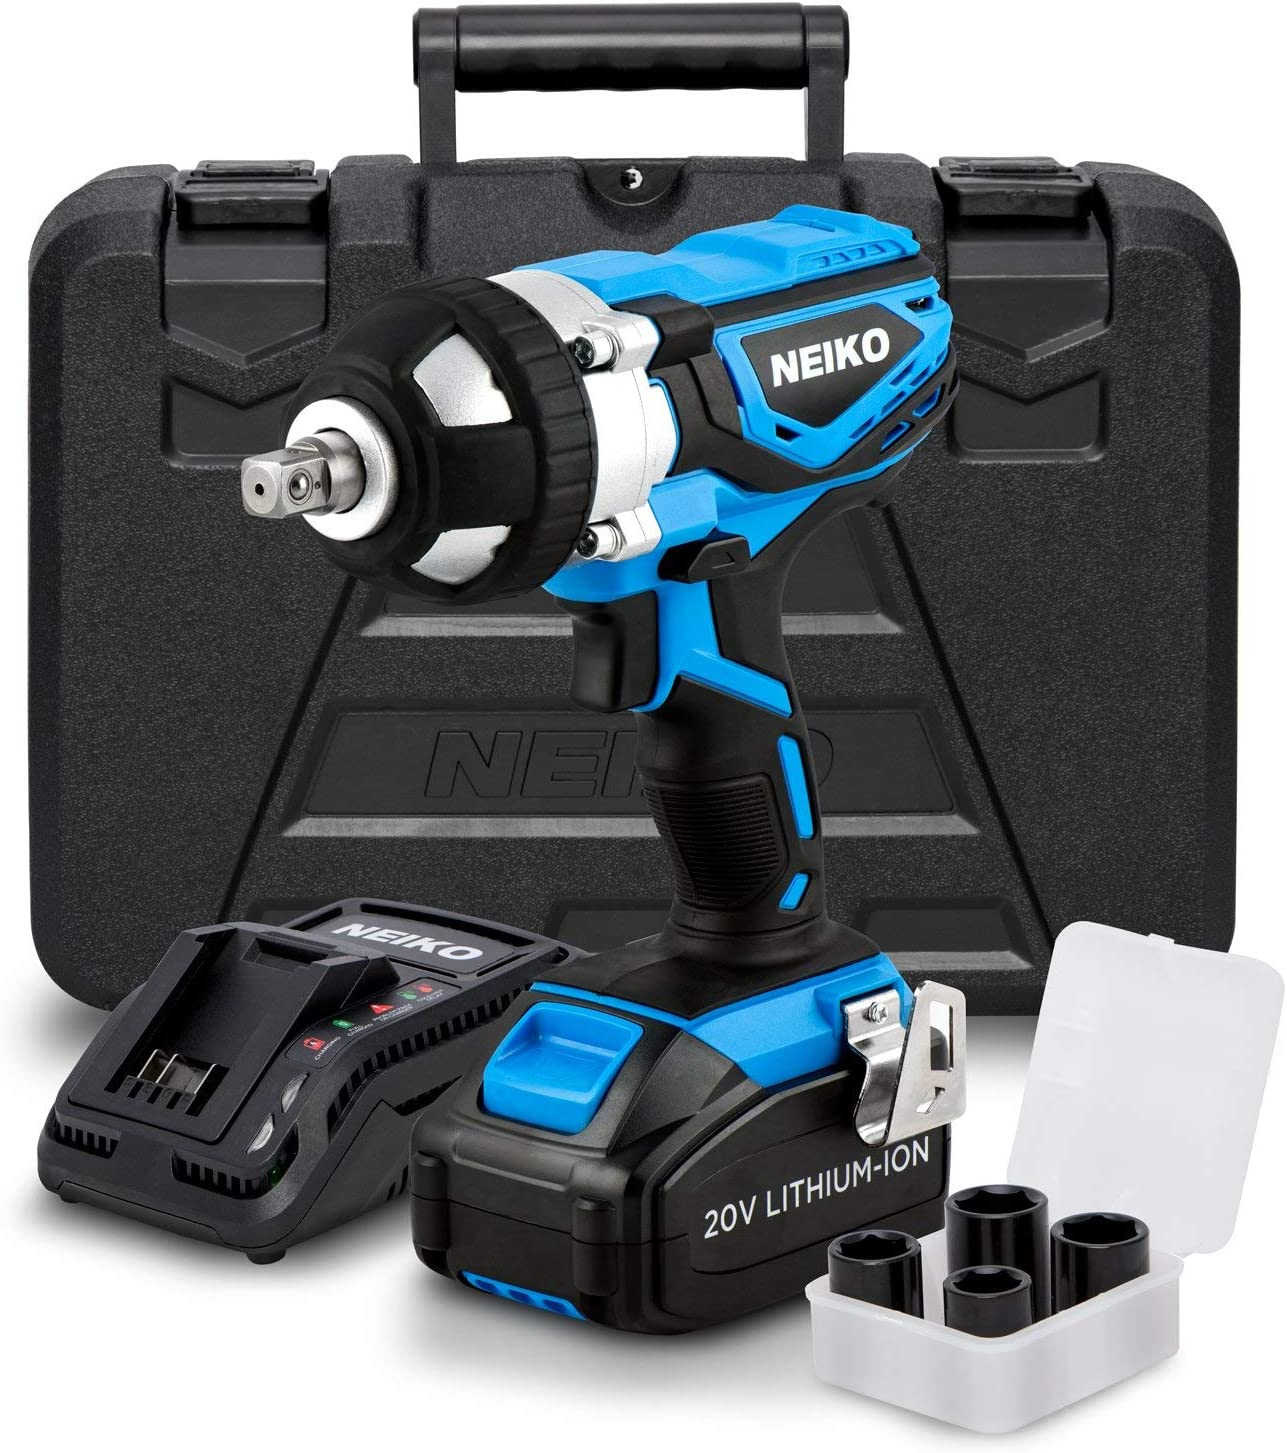 Neiko 10878A 20 V Lithium-Ion Cordless Impact Wrench with Li-Ion Battery, Fast Charger and Socket Adapters Set | 1/2-Inch Square Drive